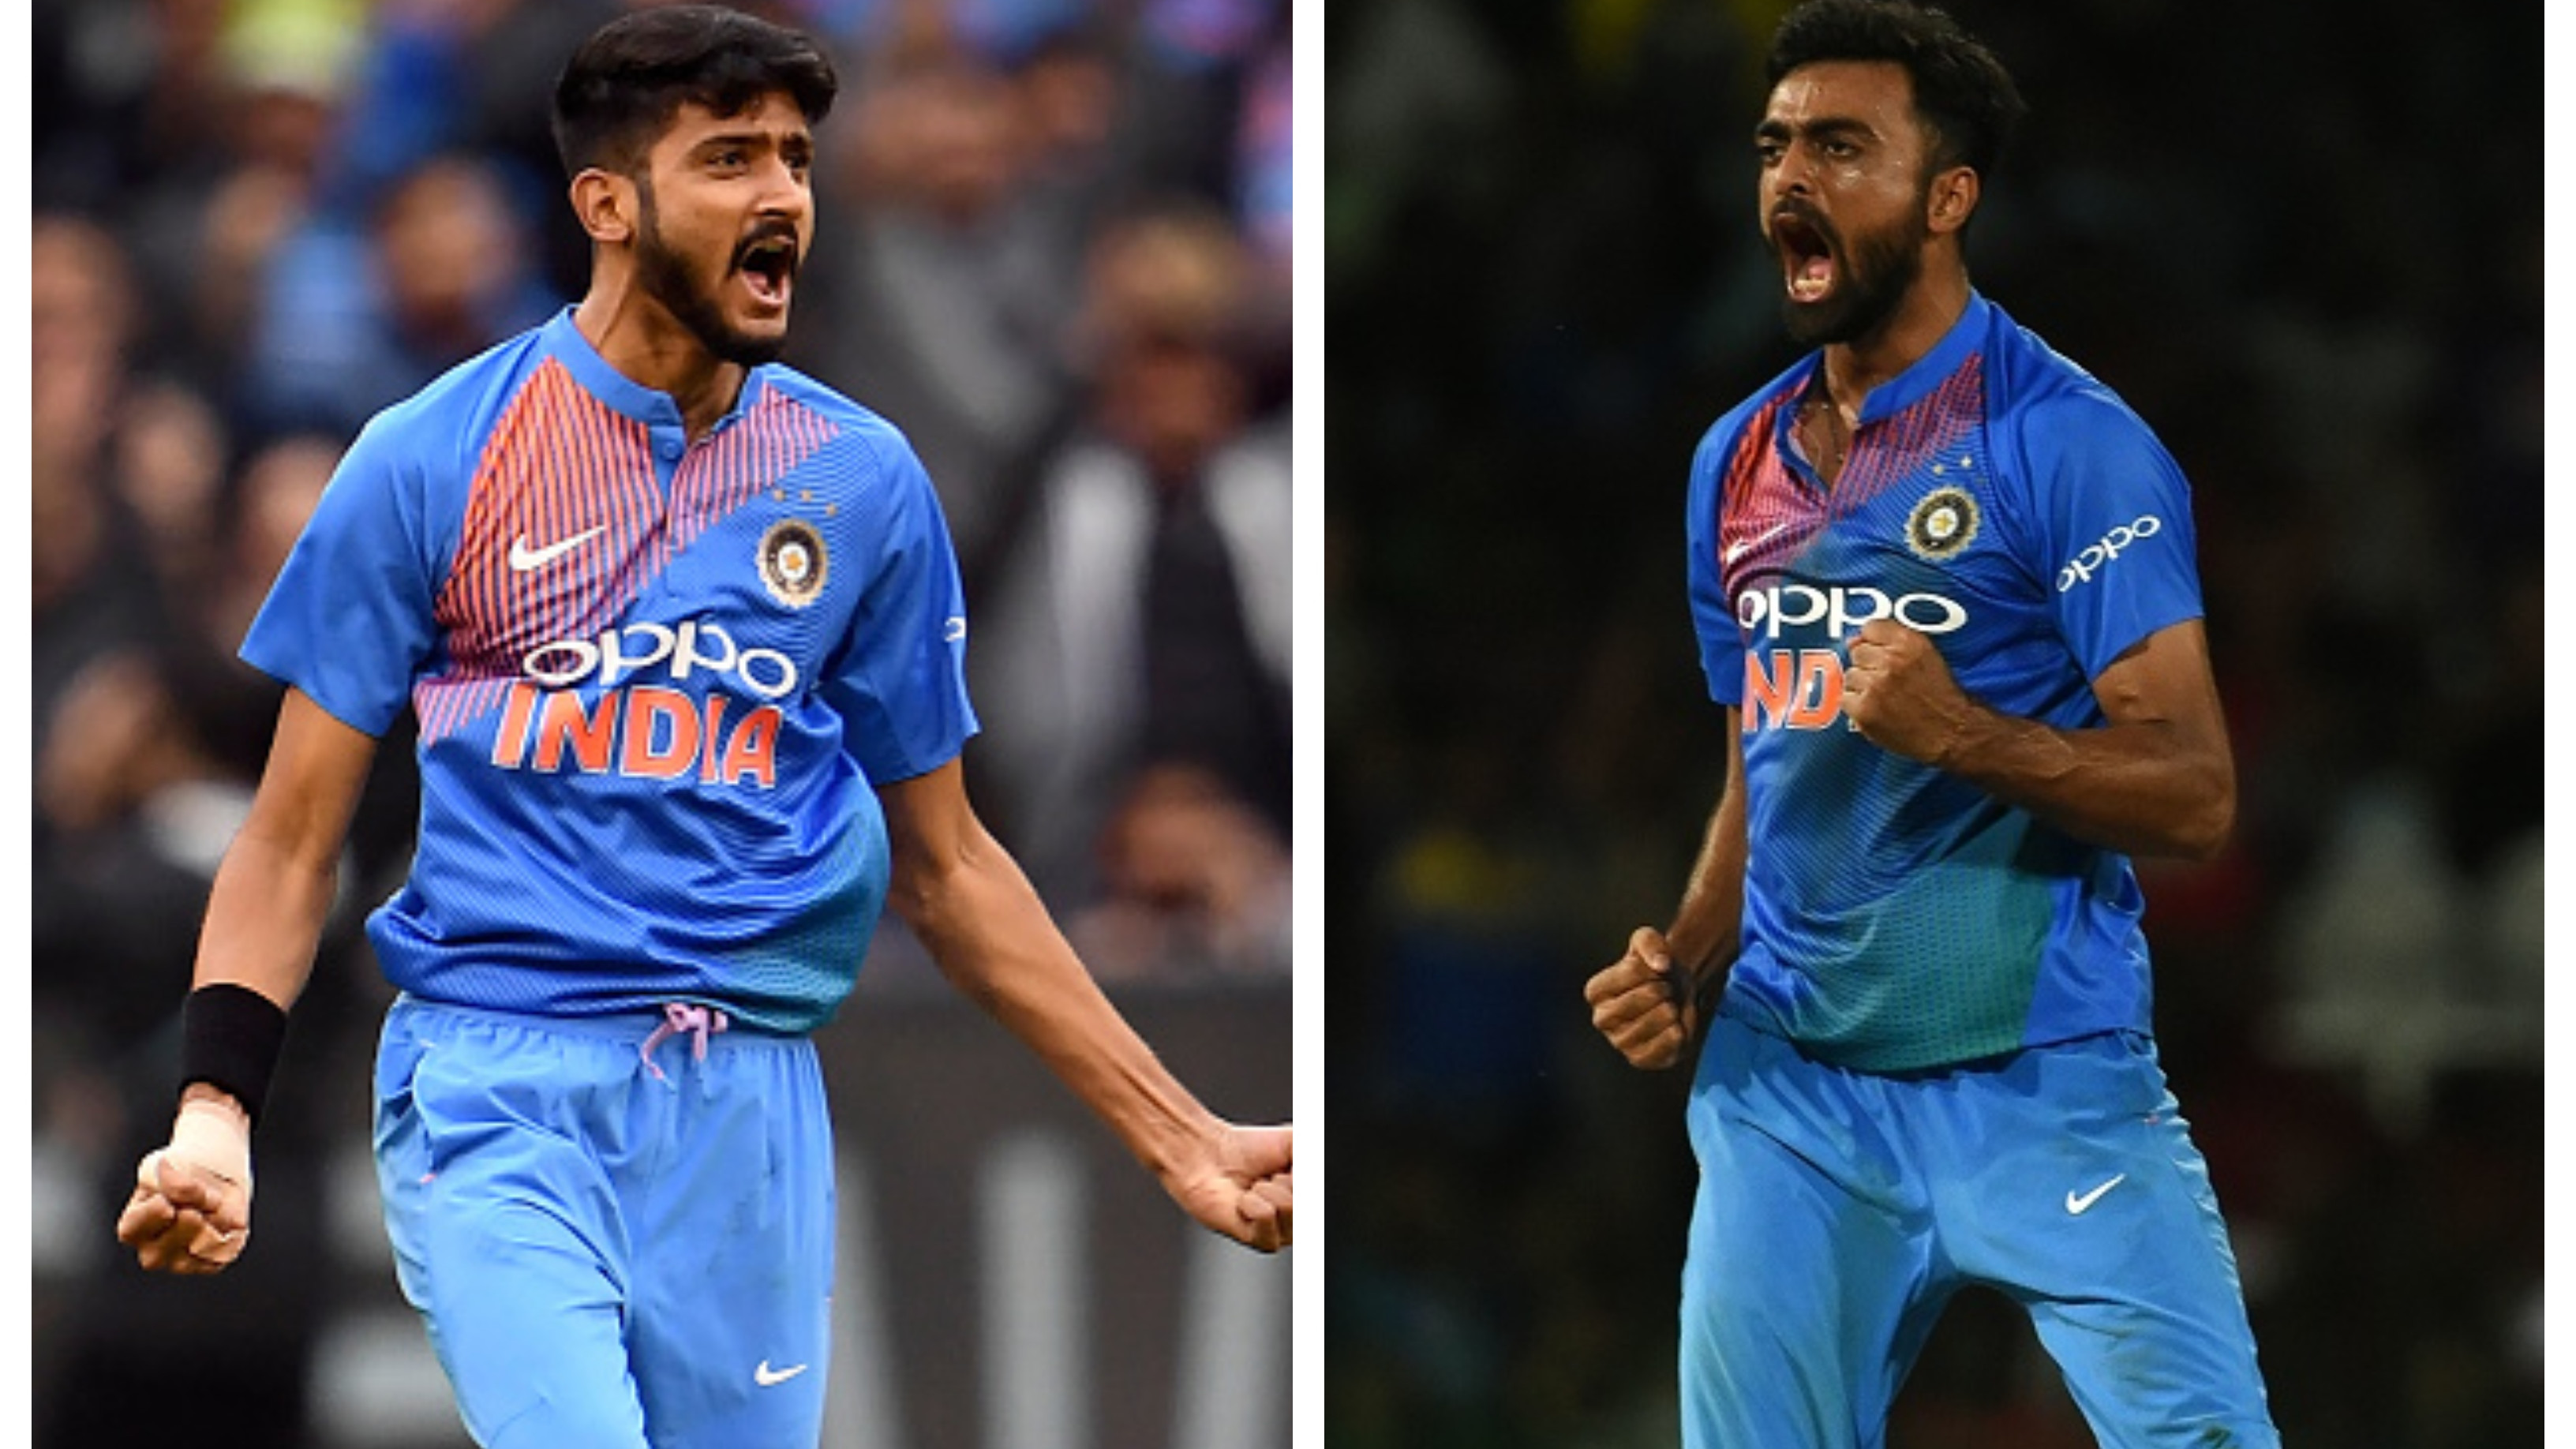 IND v AUS 2019: Toss-up between Khaleel Ahmed and Jaydev Unadkat for the ODI series